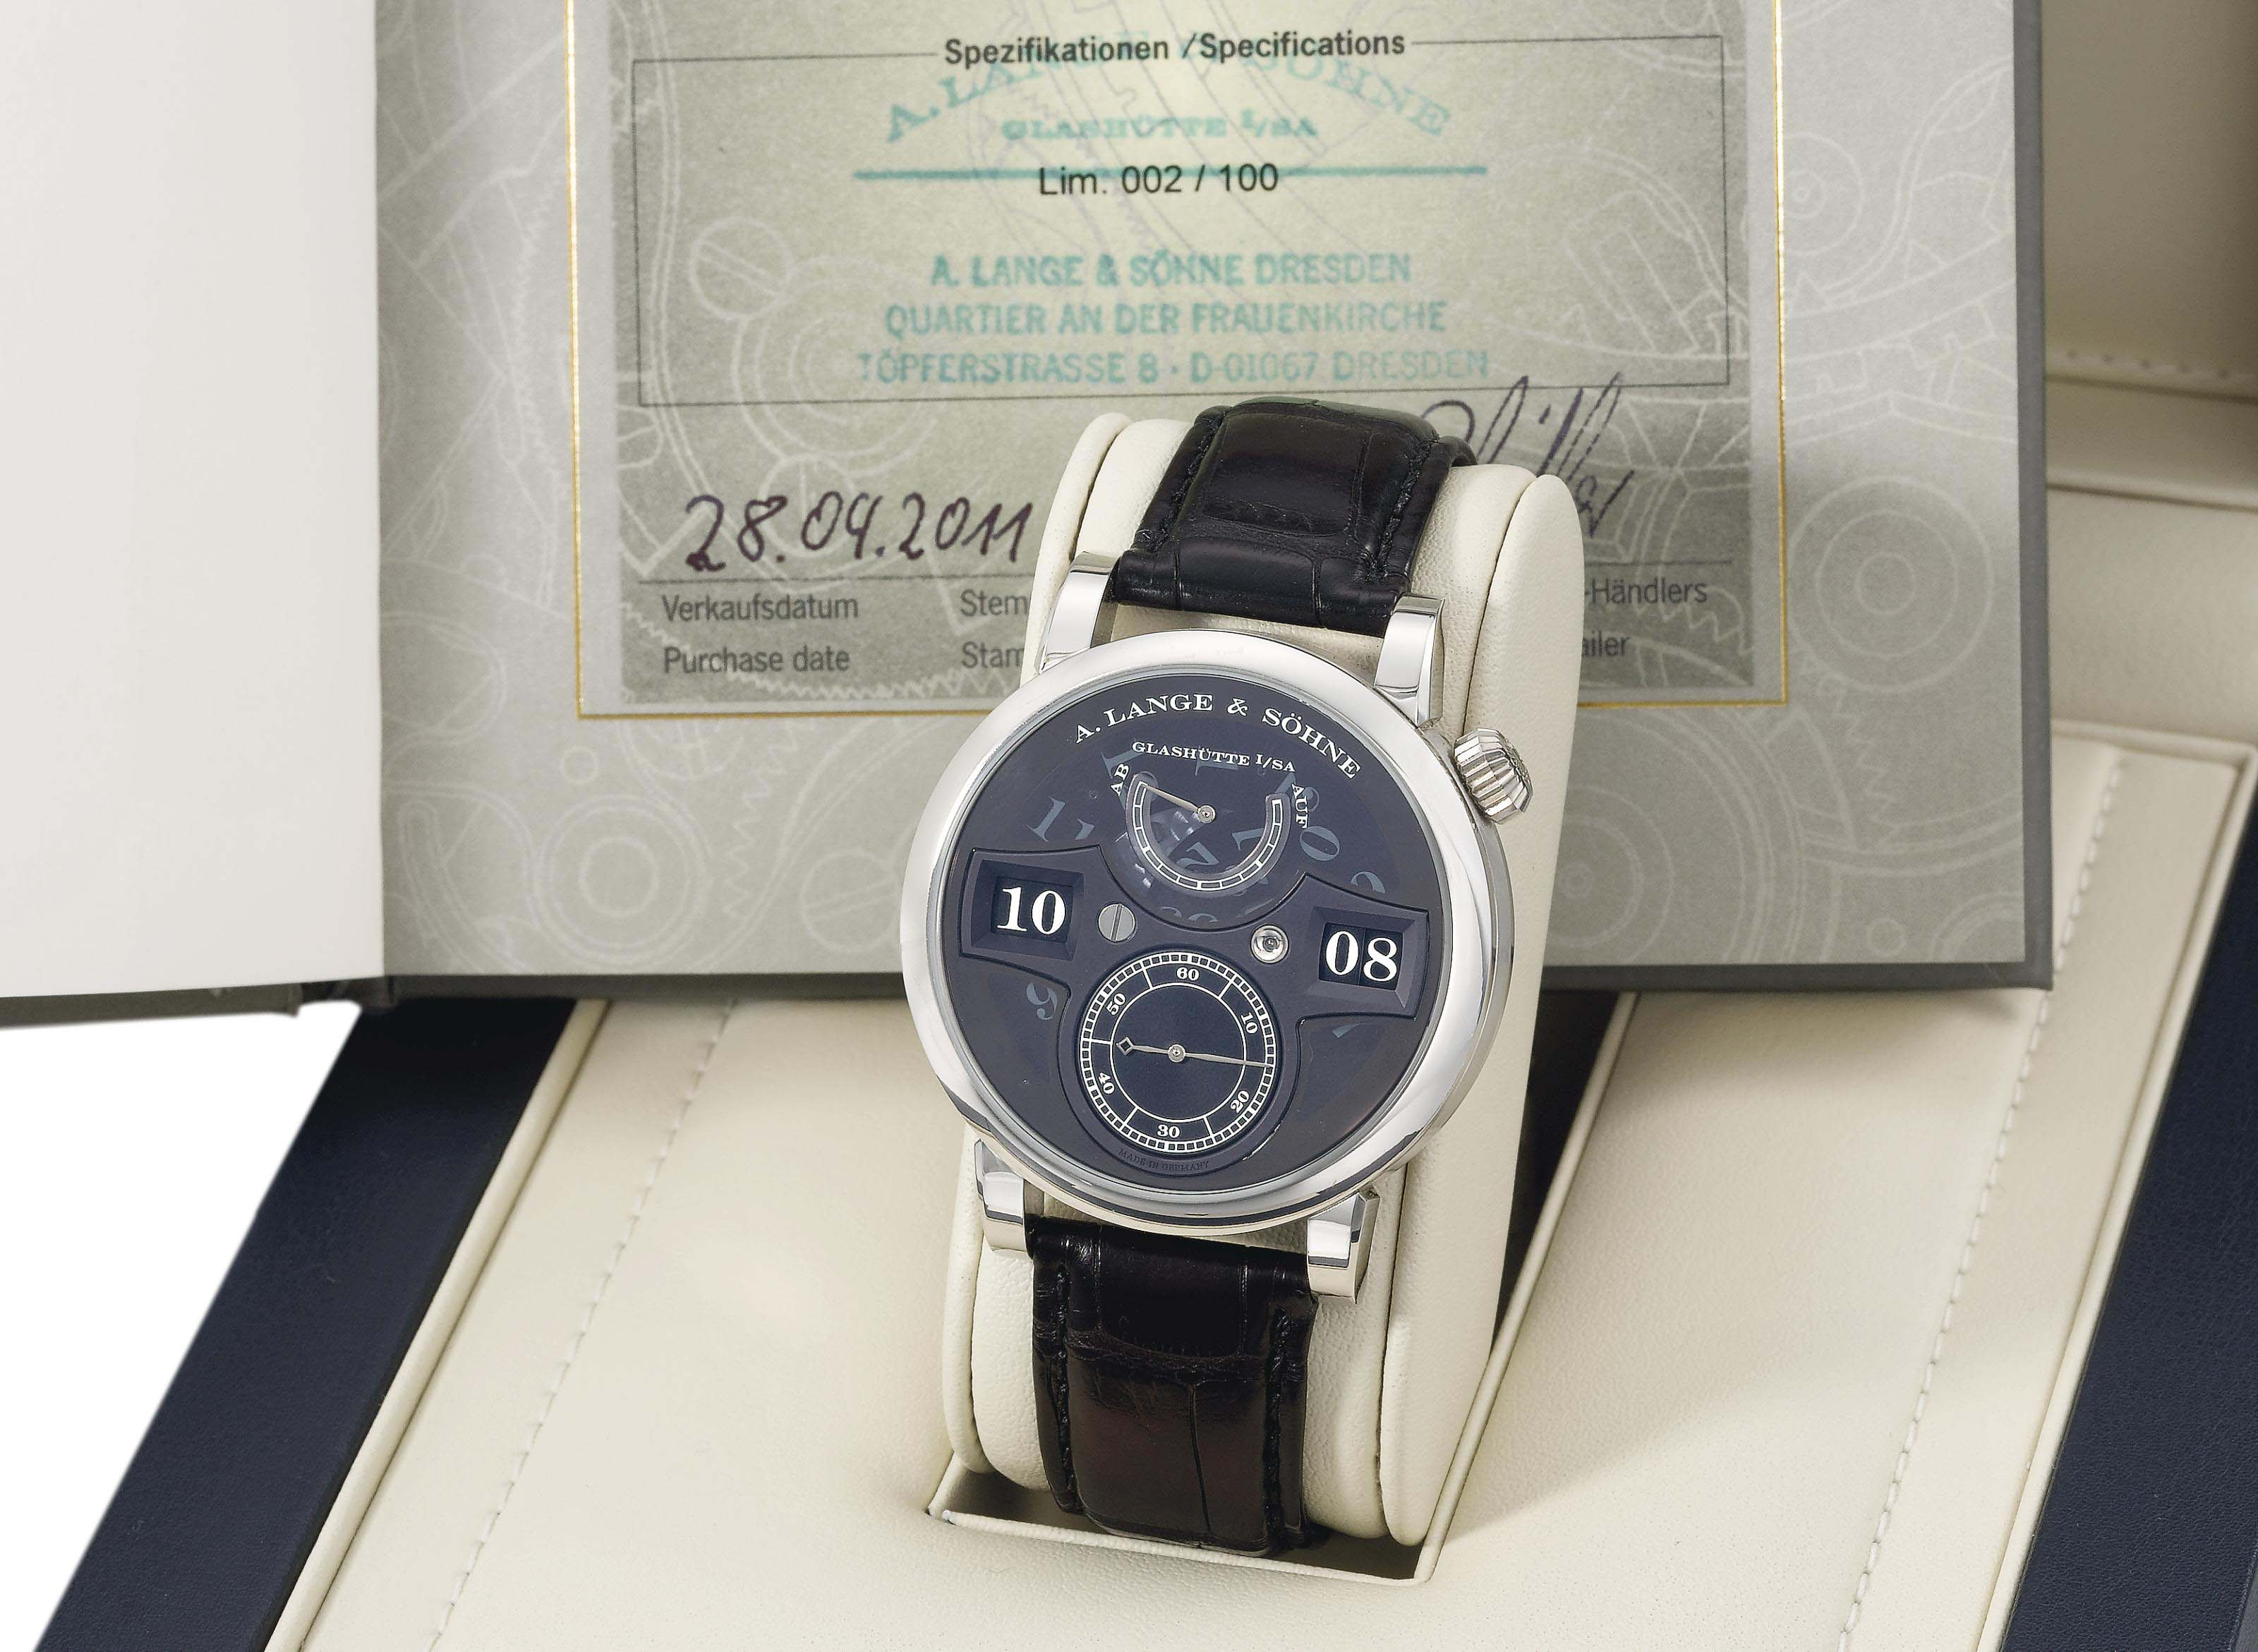 A. Lange & Söhne. A very rare, fine and large platinum limited edition wristwatch with power reserve and digital time display